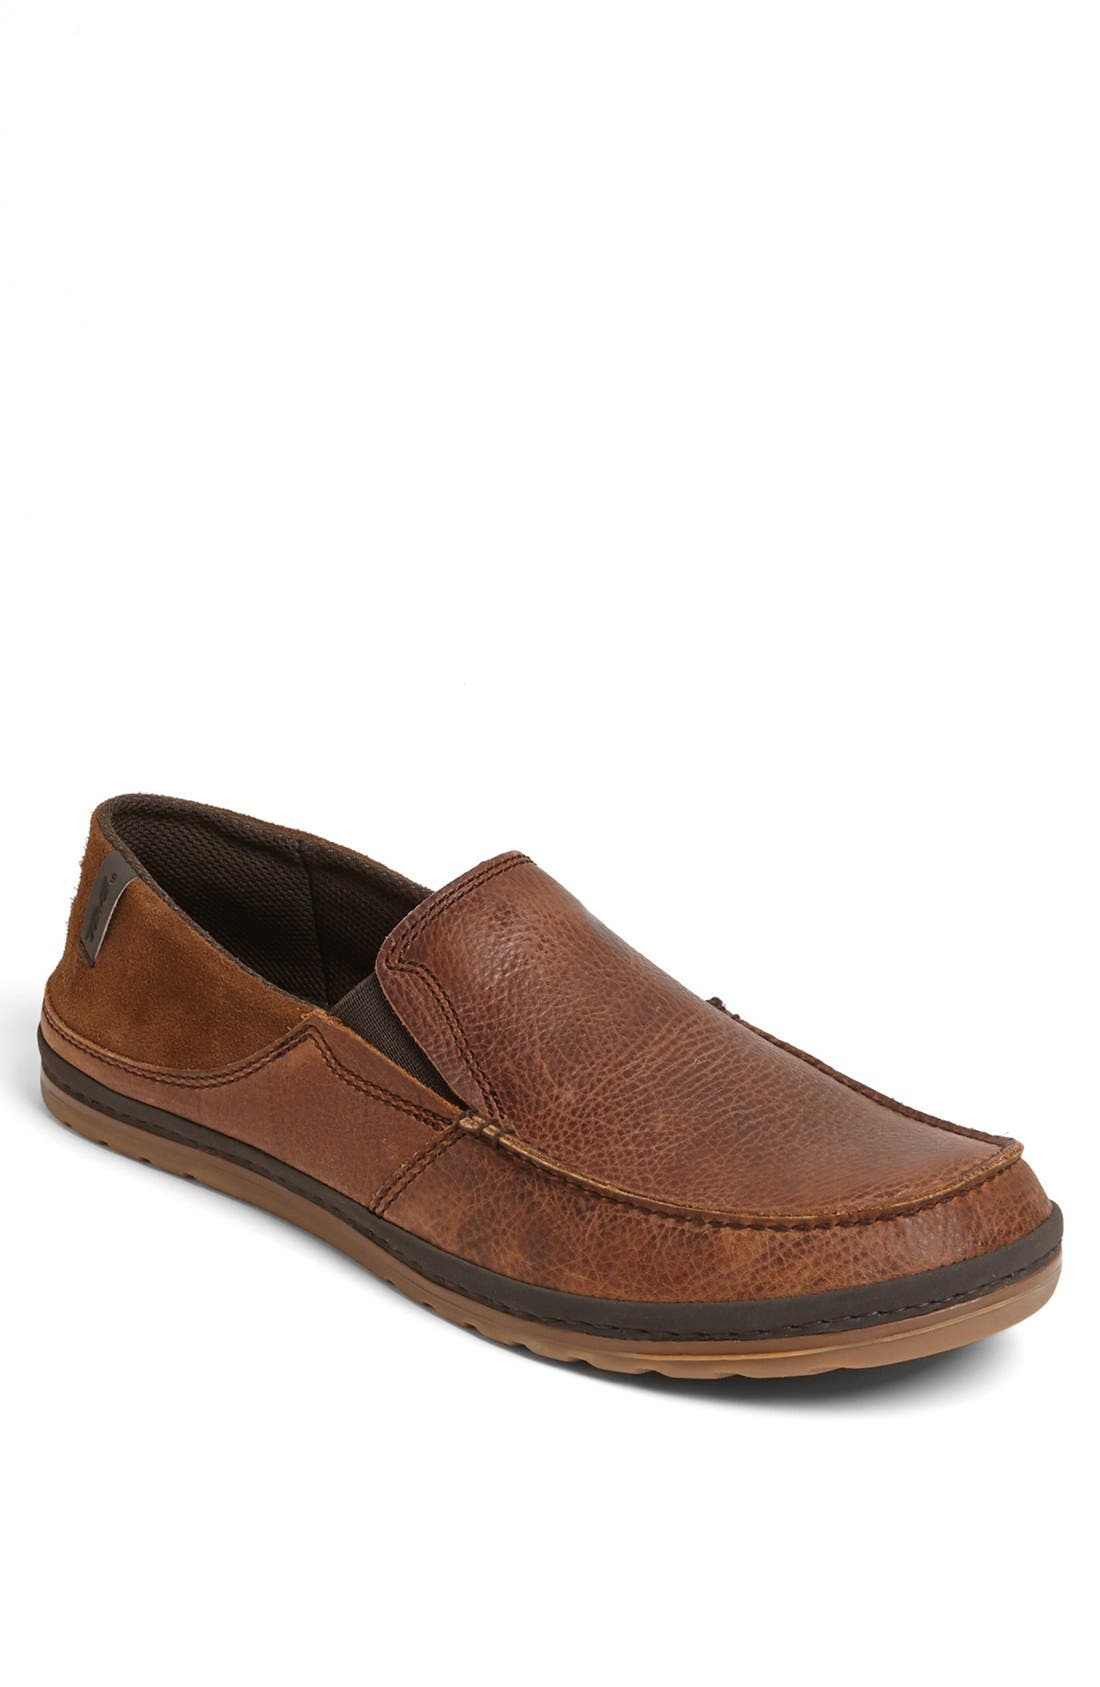 Main Image - Teva 'Clifton Creek' Leather Driving Moccasin